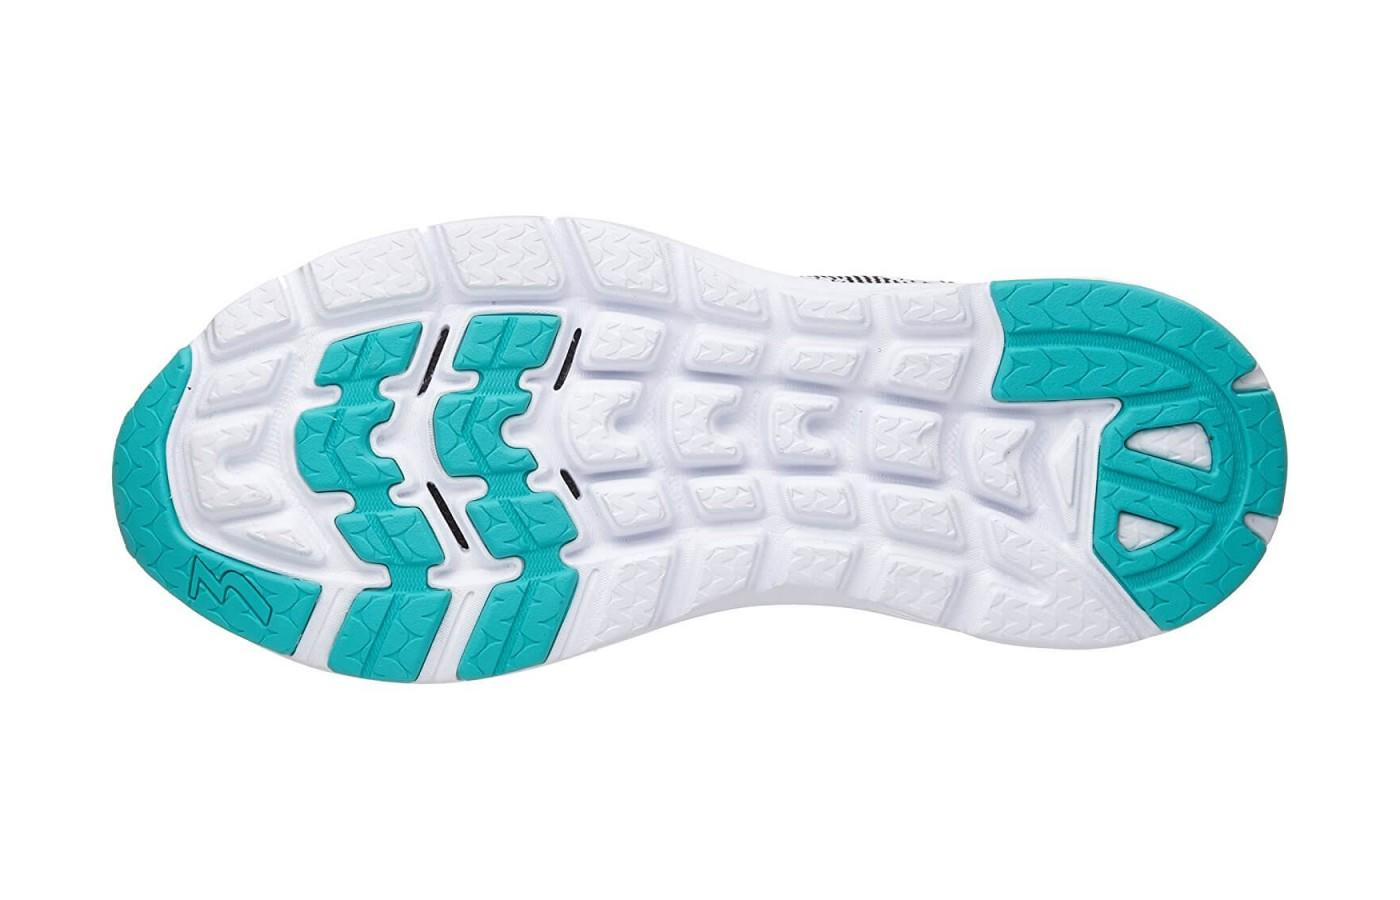 the outsole provides solid traction on roads and sidewalks